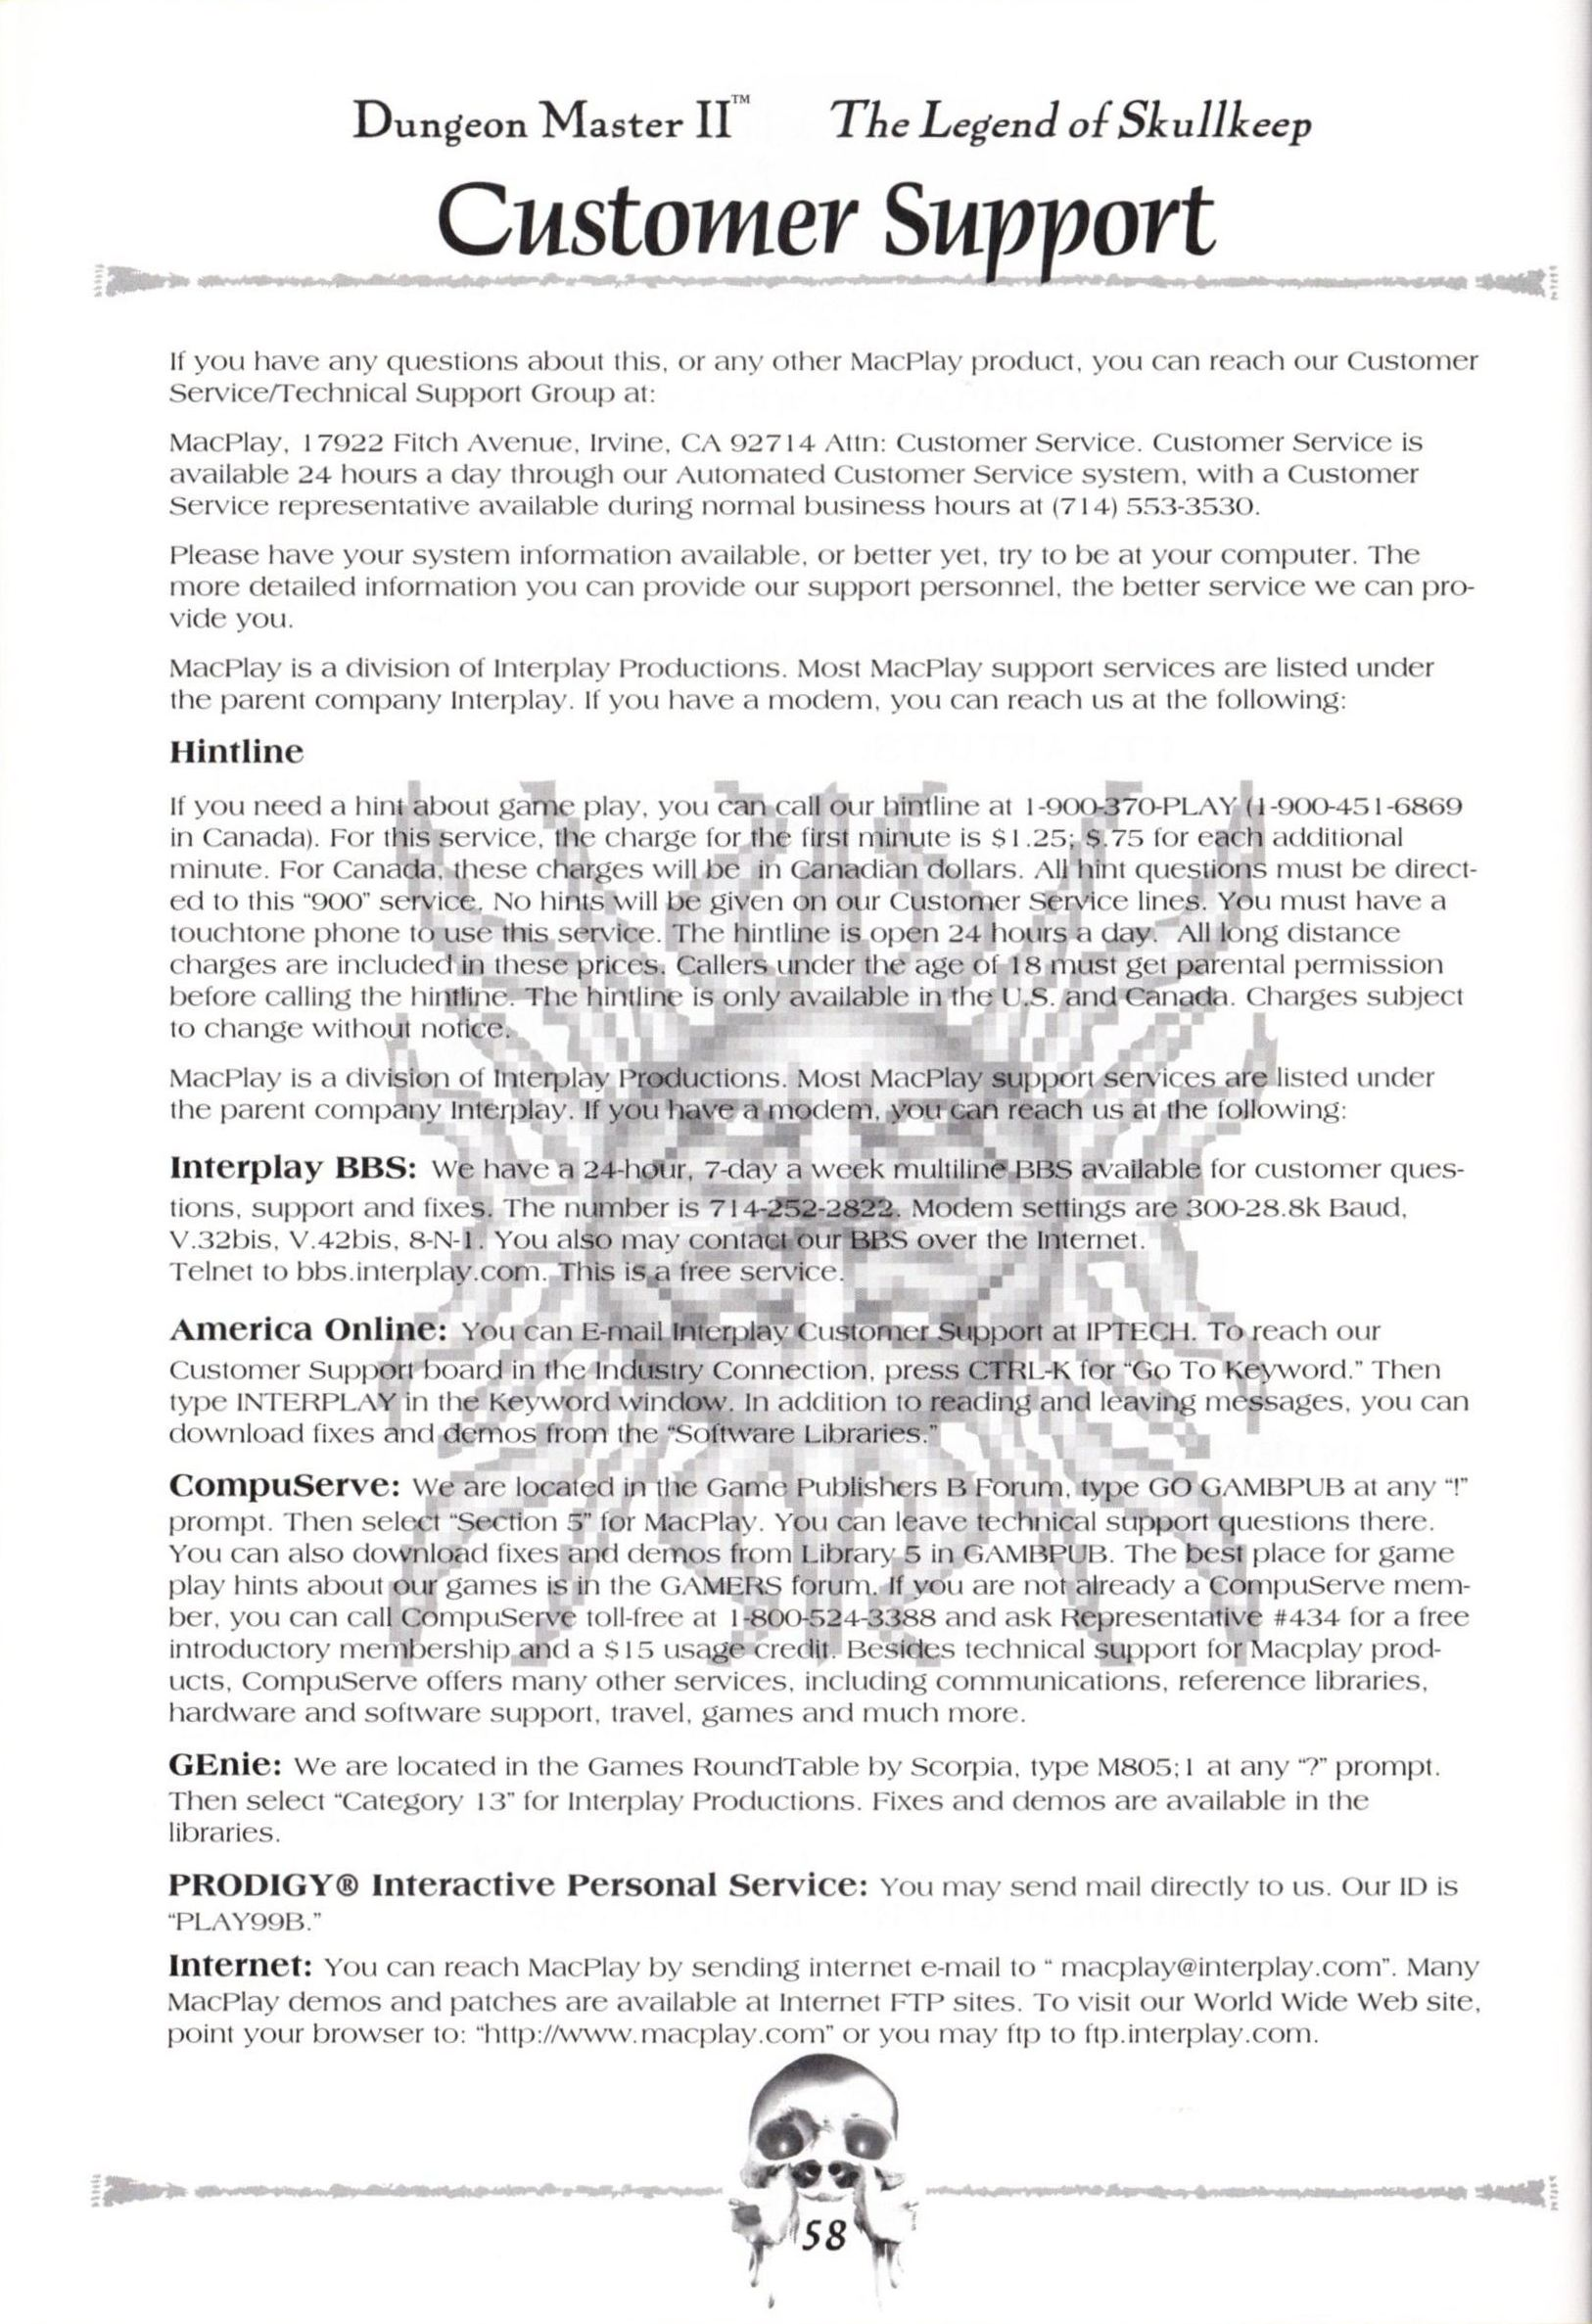 Game - Dungeon Master II - US - Macintosh - Manual - Page 060 - Scan